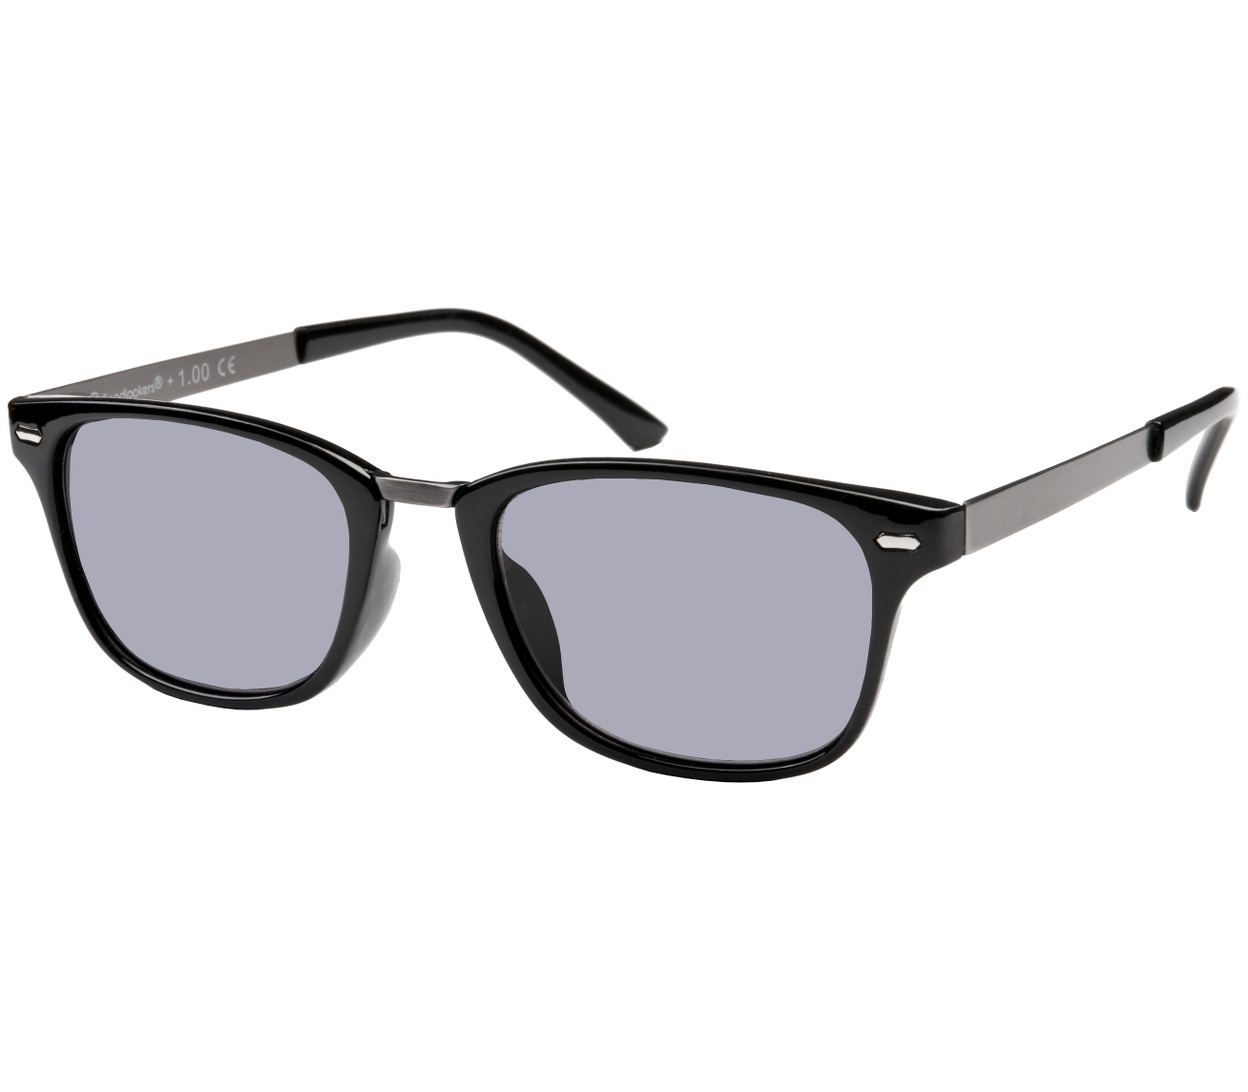 Main Image (Angle) - Frankie (Black) Retro Sun Readers